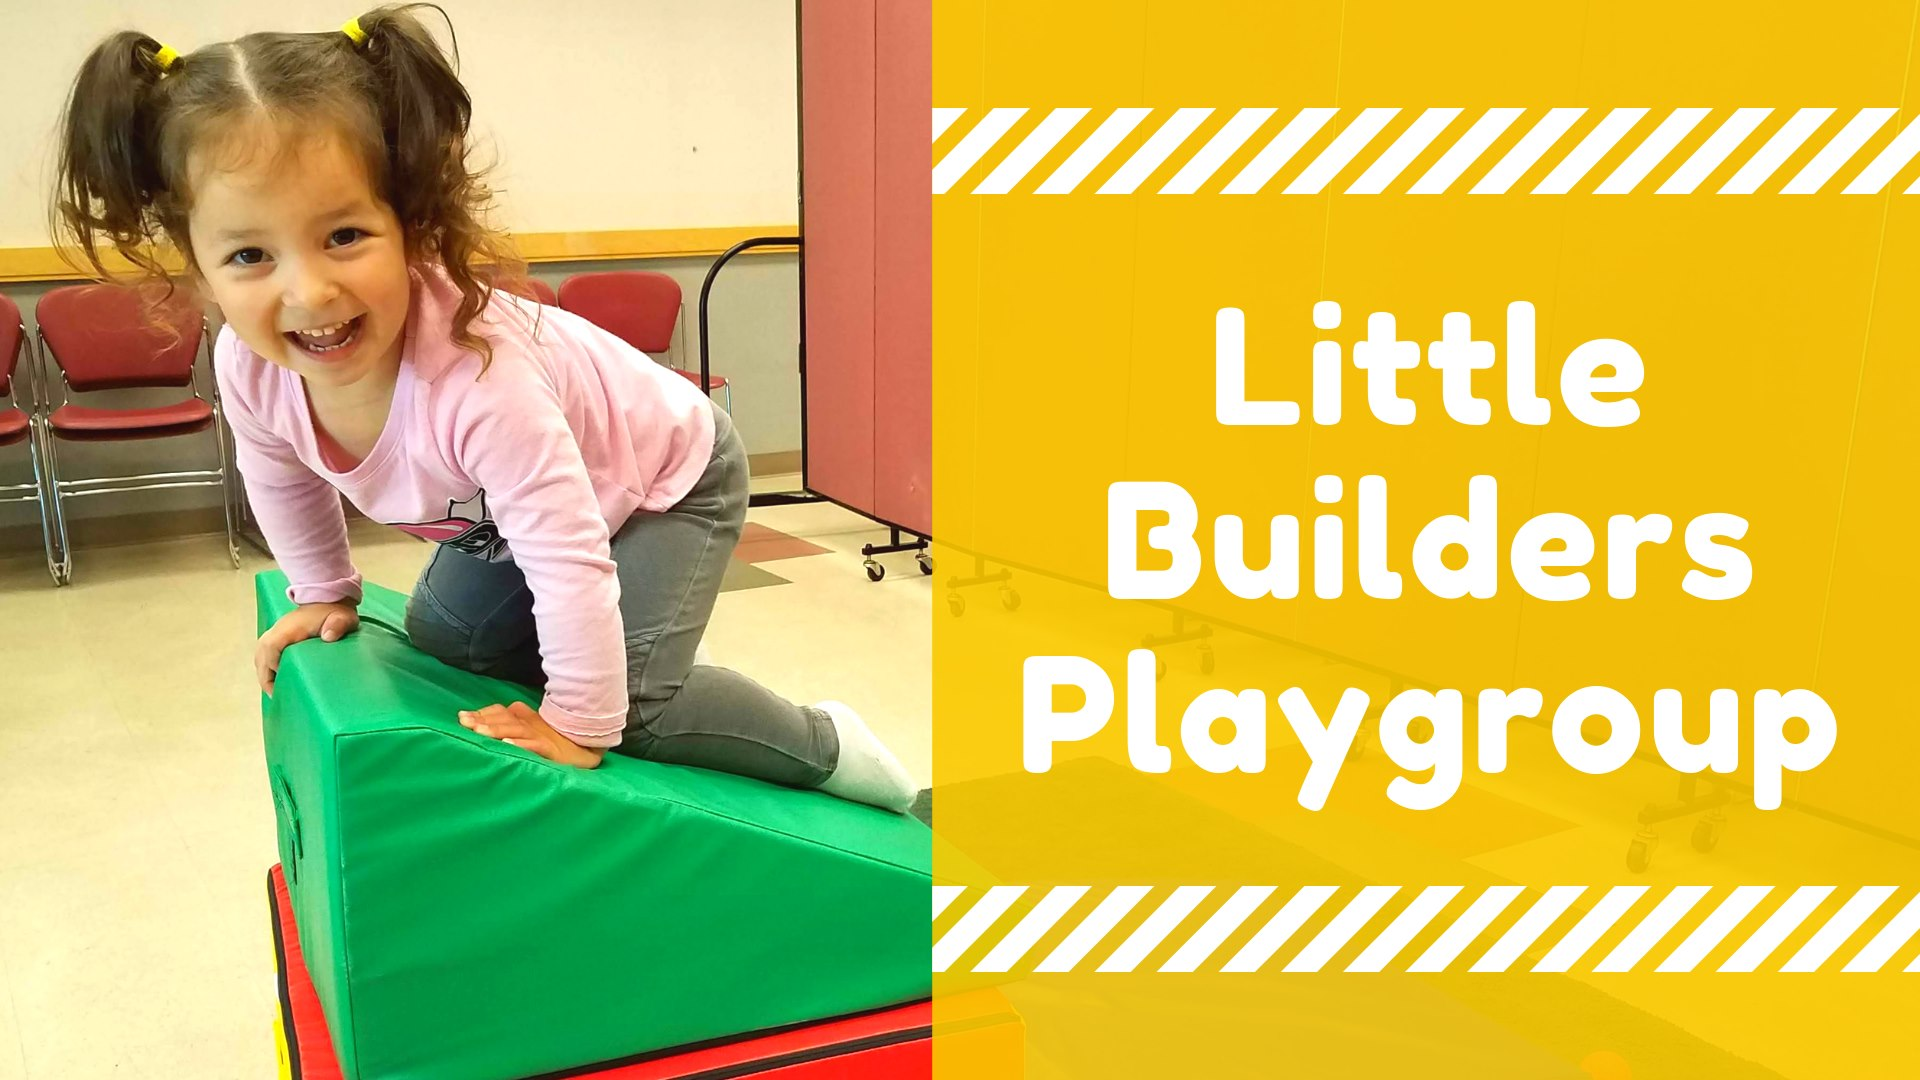 Little Builders Playgroup | Ages 0 - 5